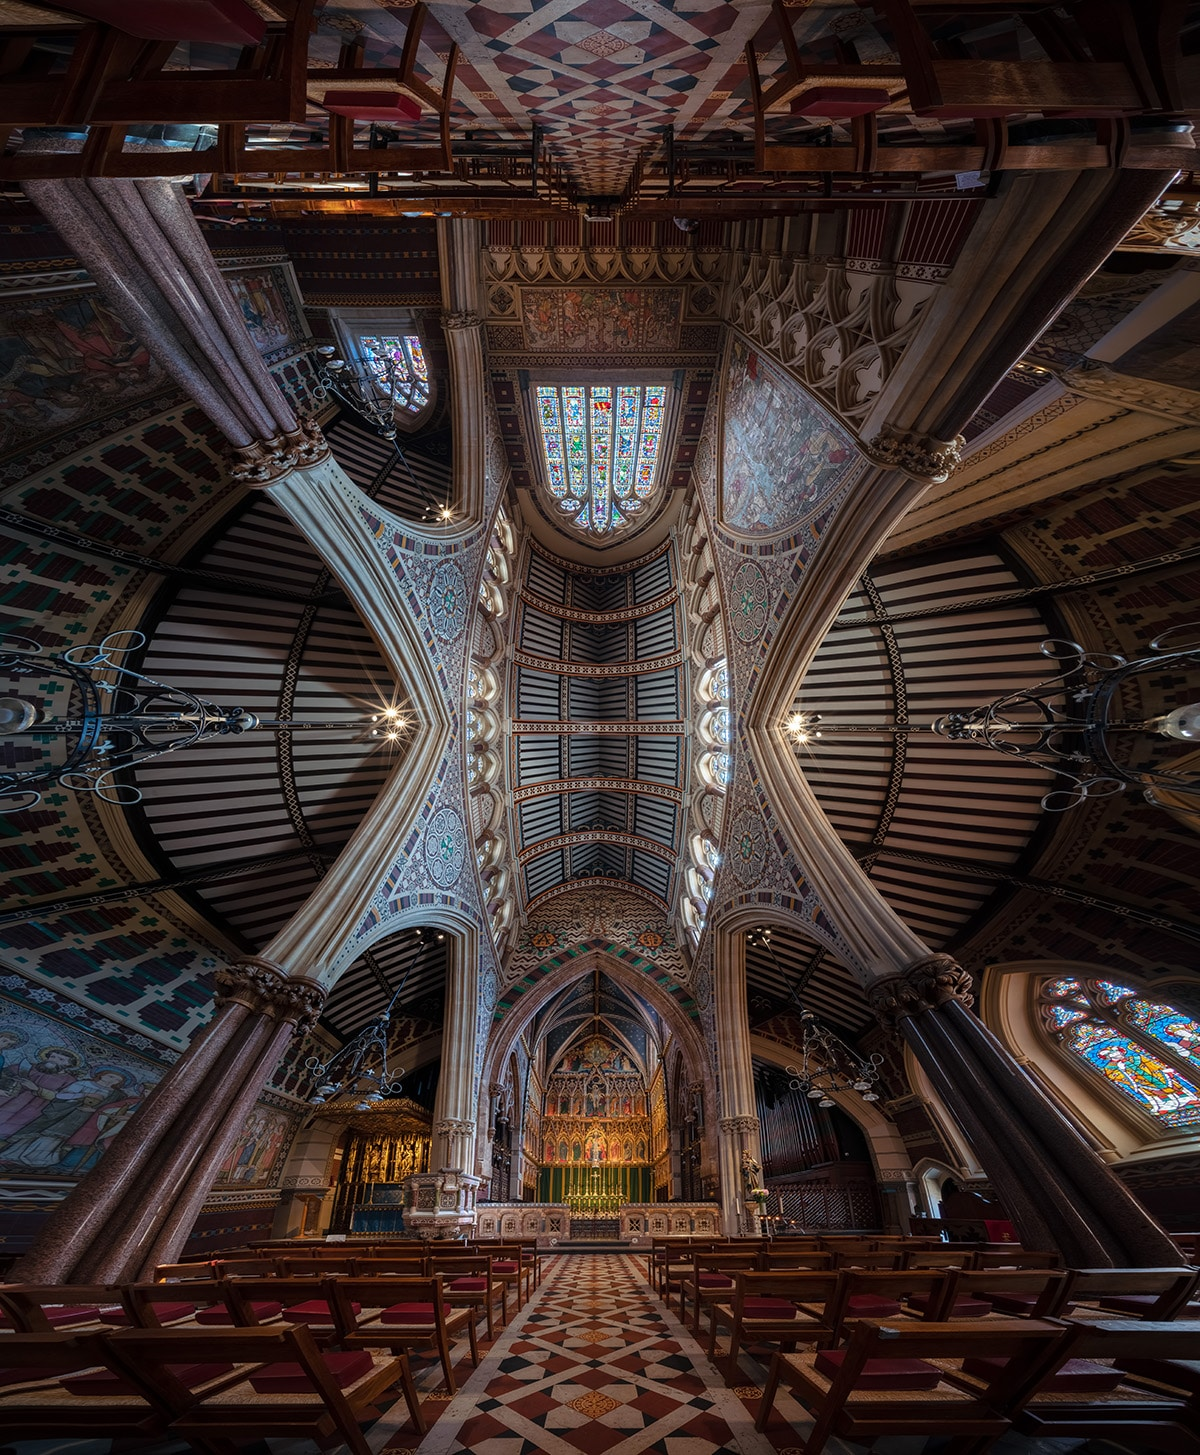 Church interiors by Peter Li